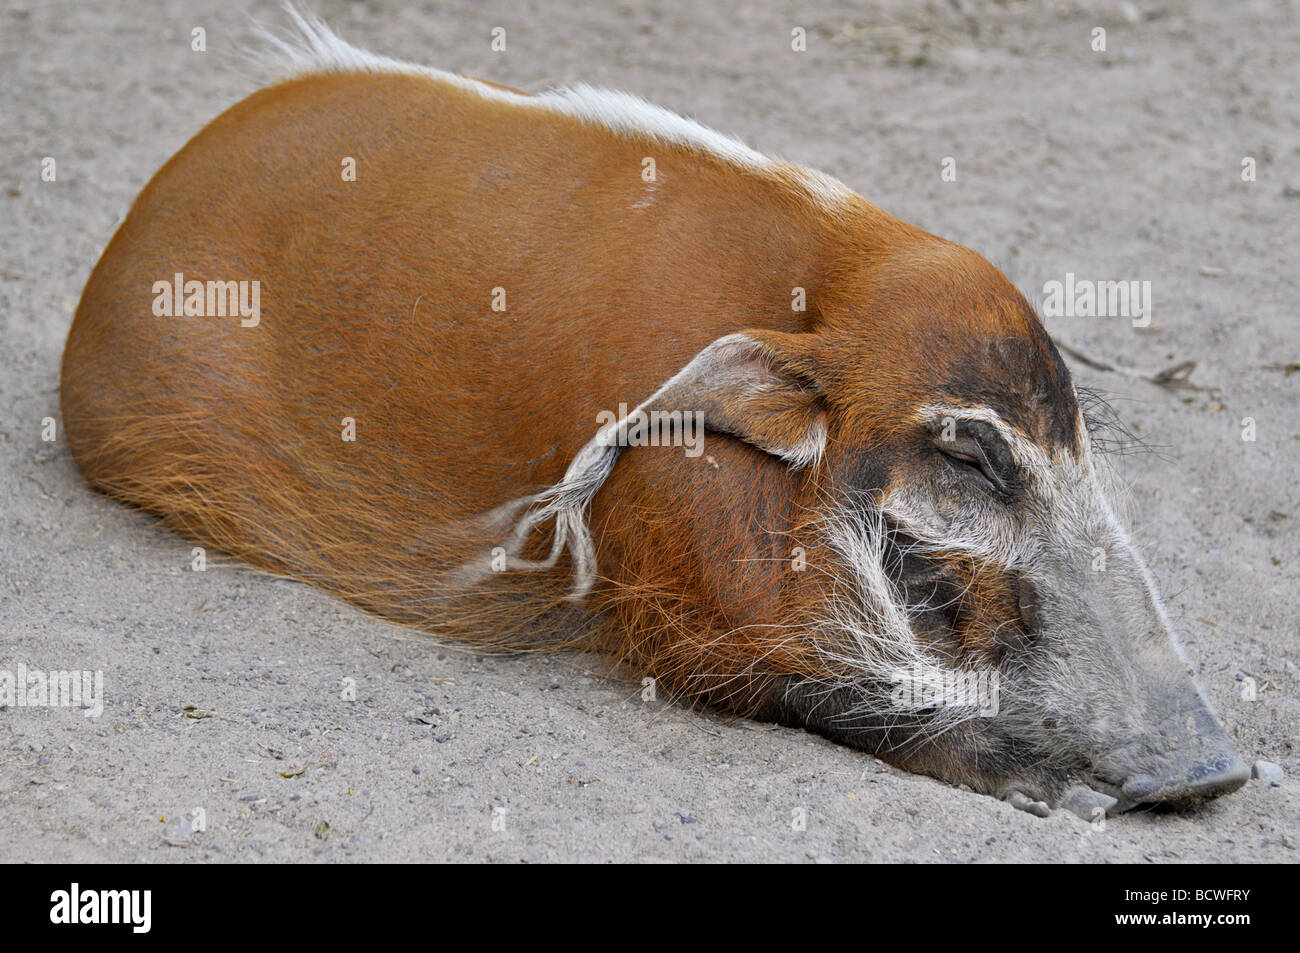 Red River Hog (Potamochoerus porcus), African Bush Pig - Stock Image